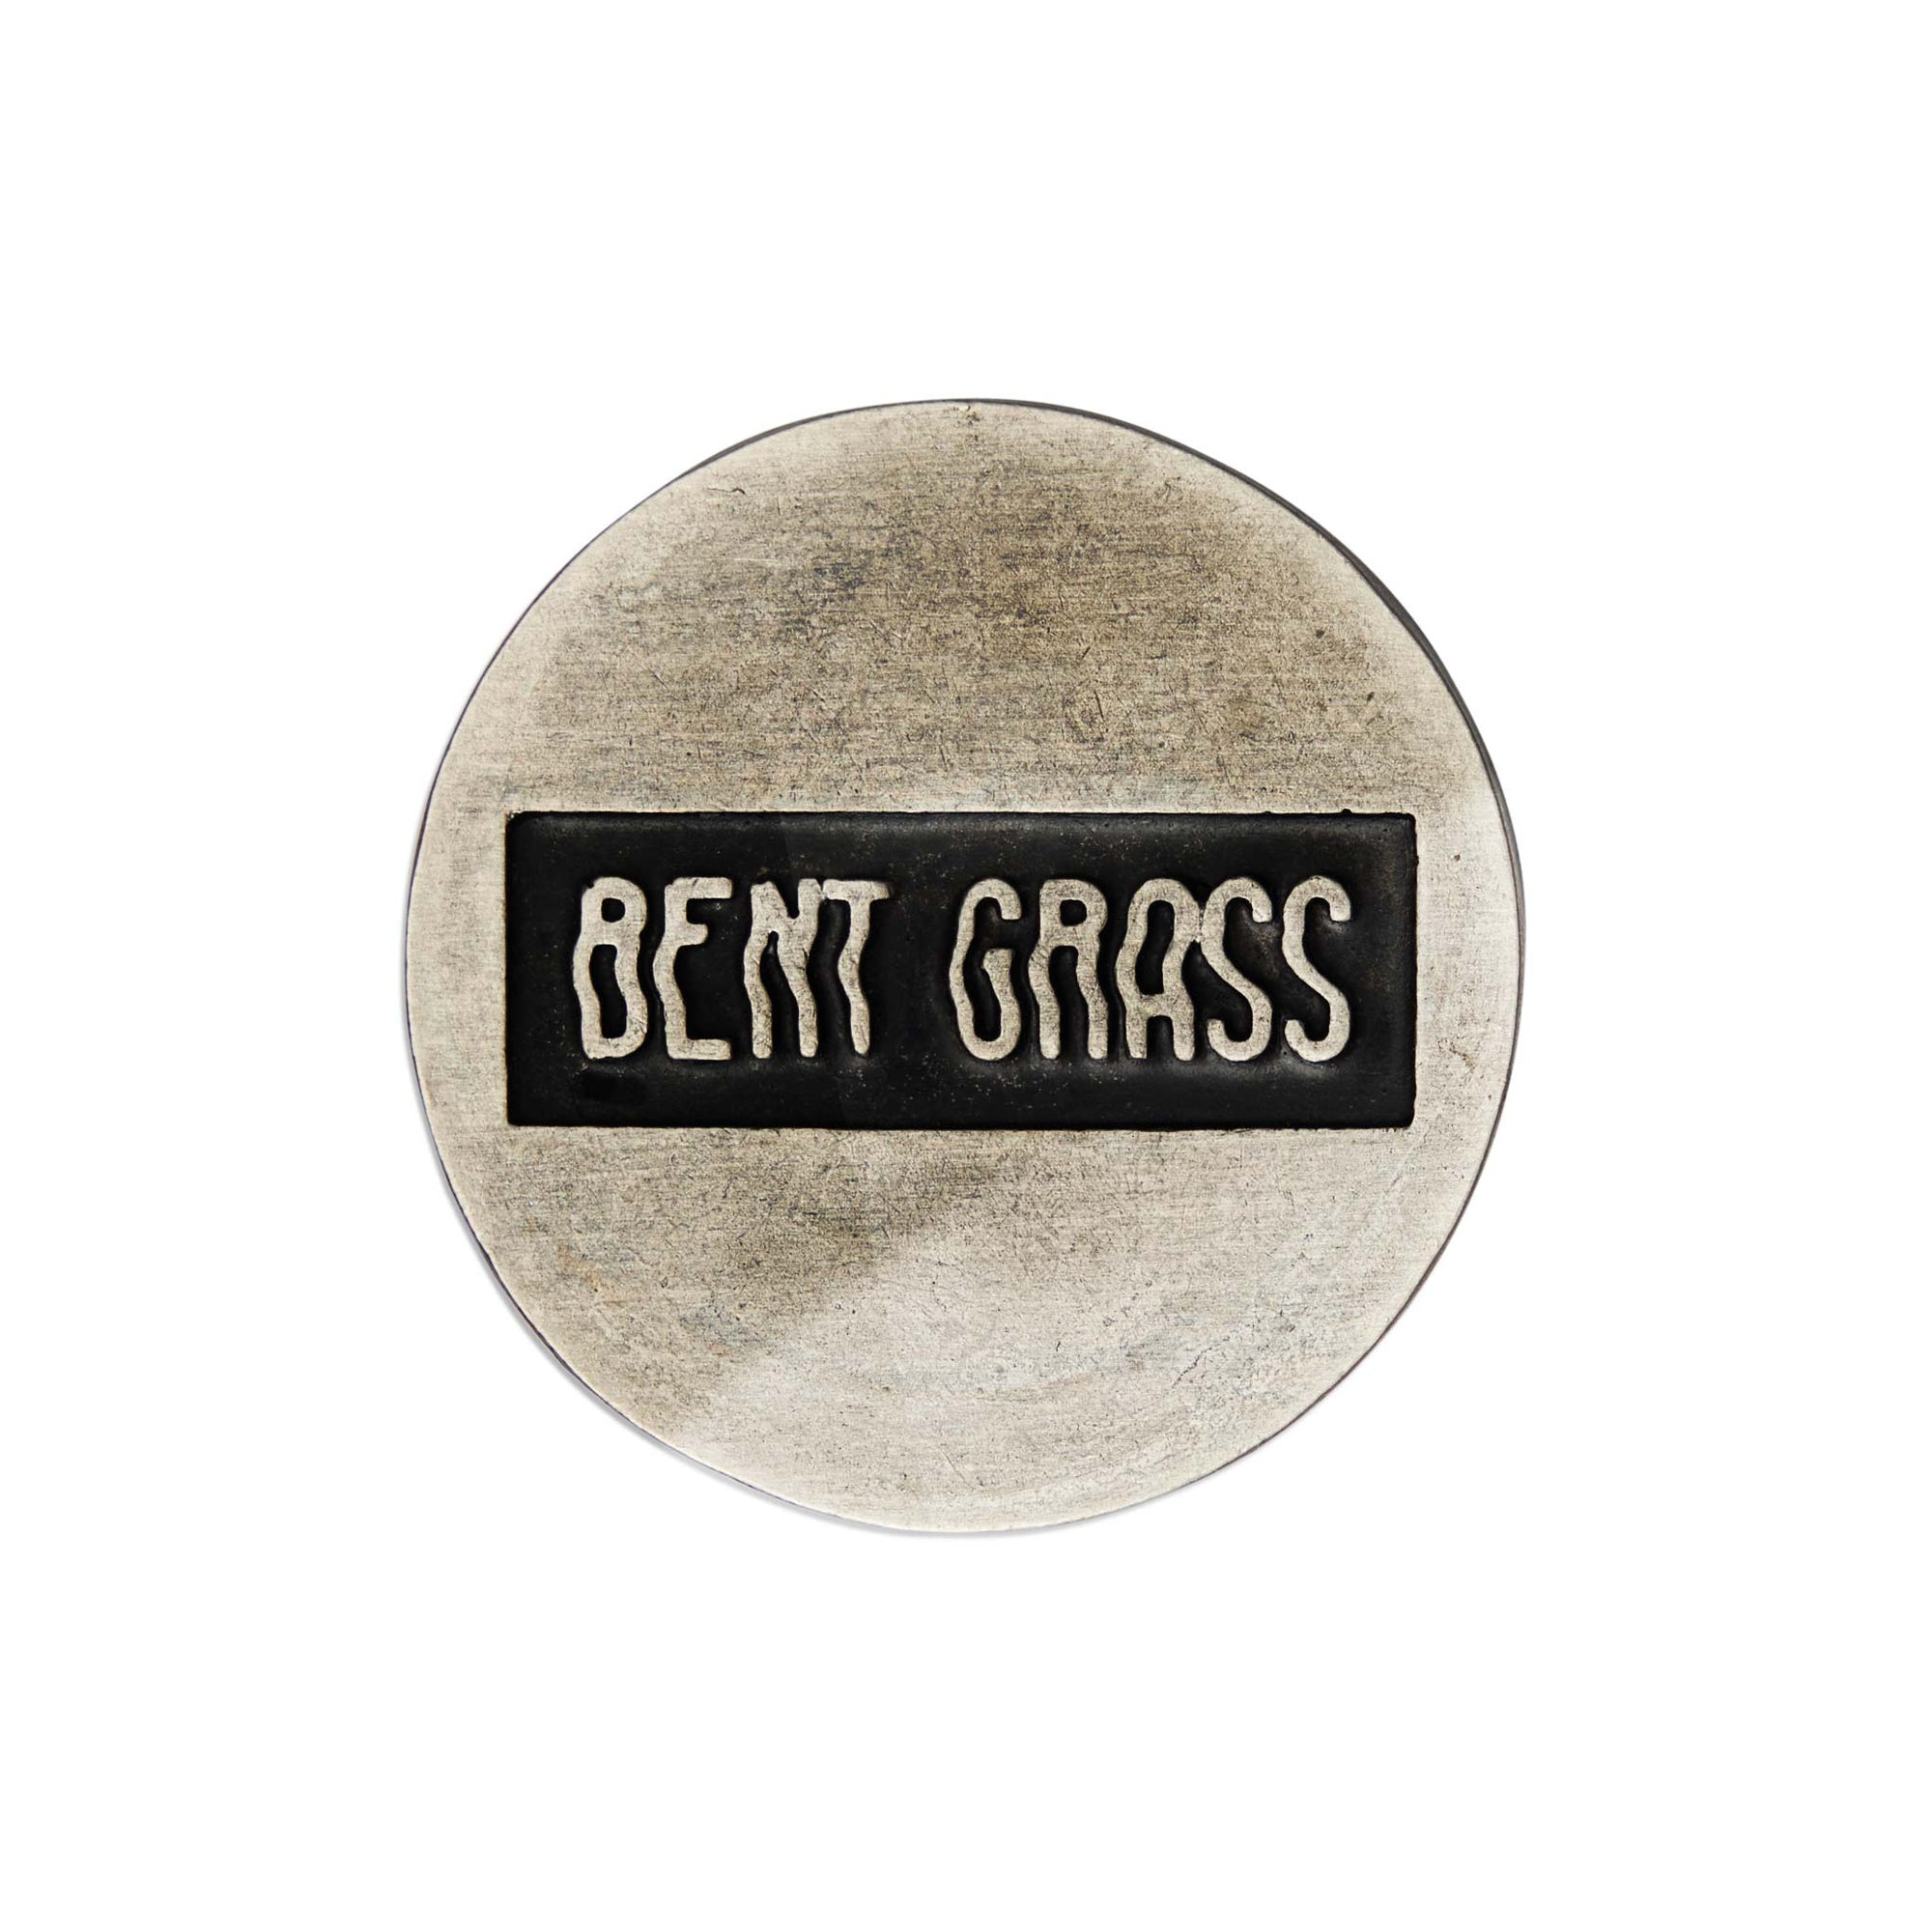 birds-of-condor-bent-grass-nickel-golf-ball-mark-front